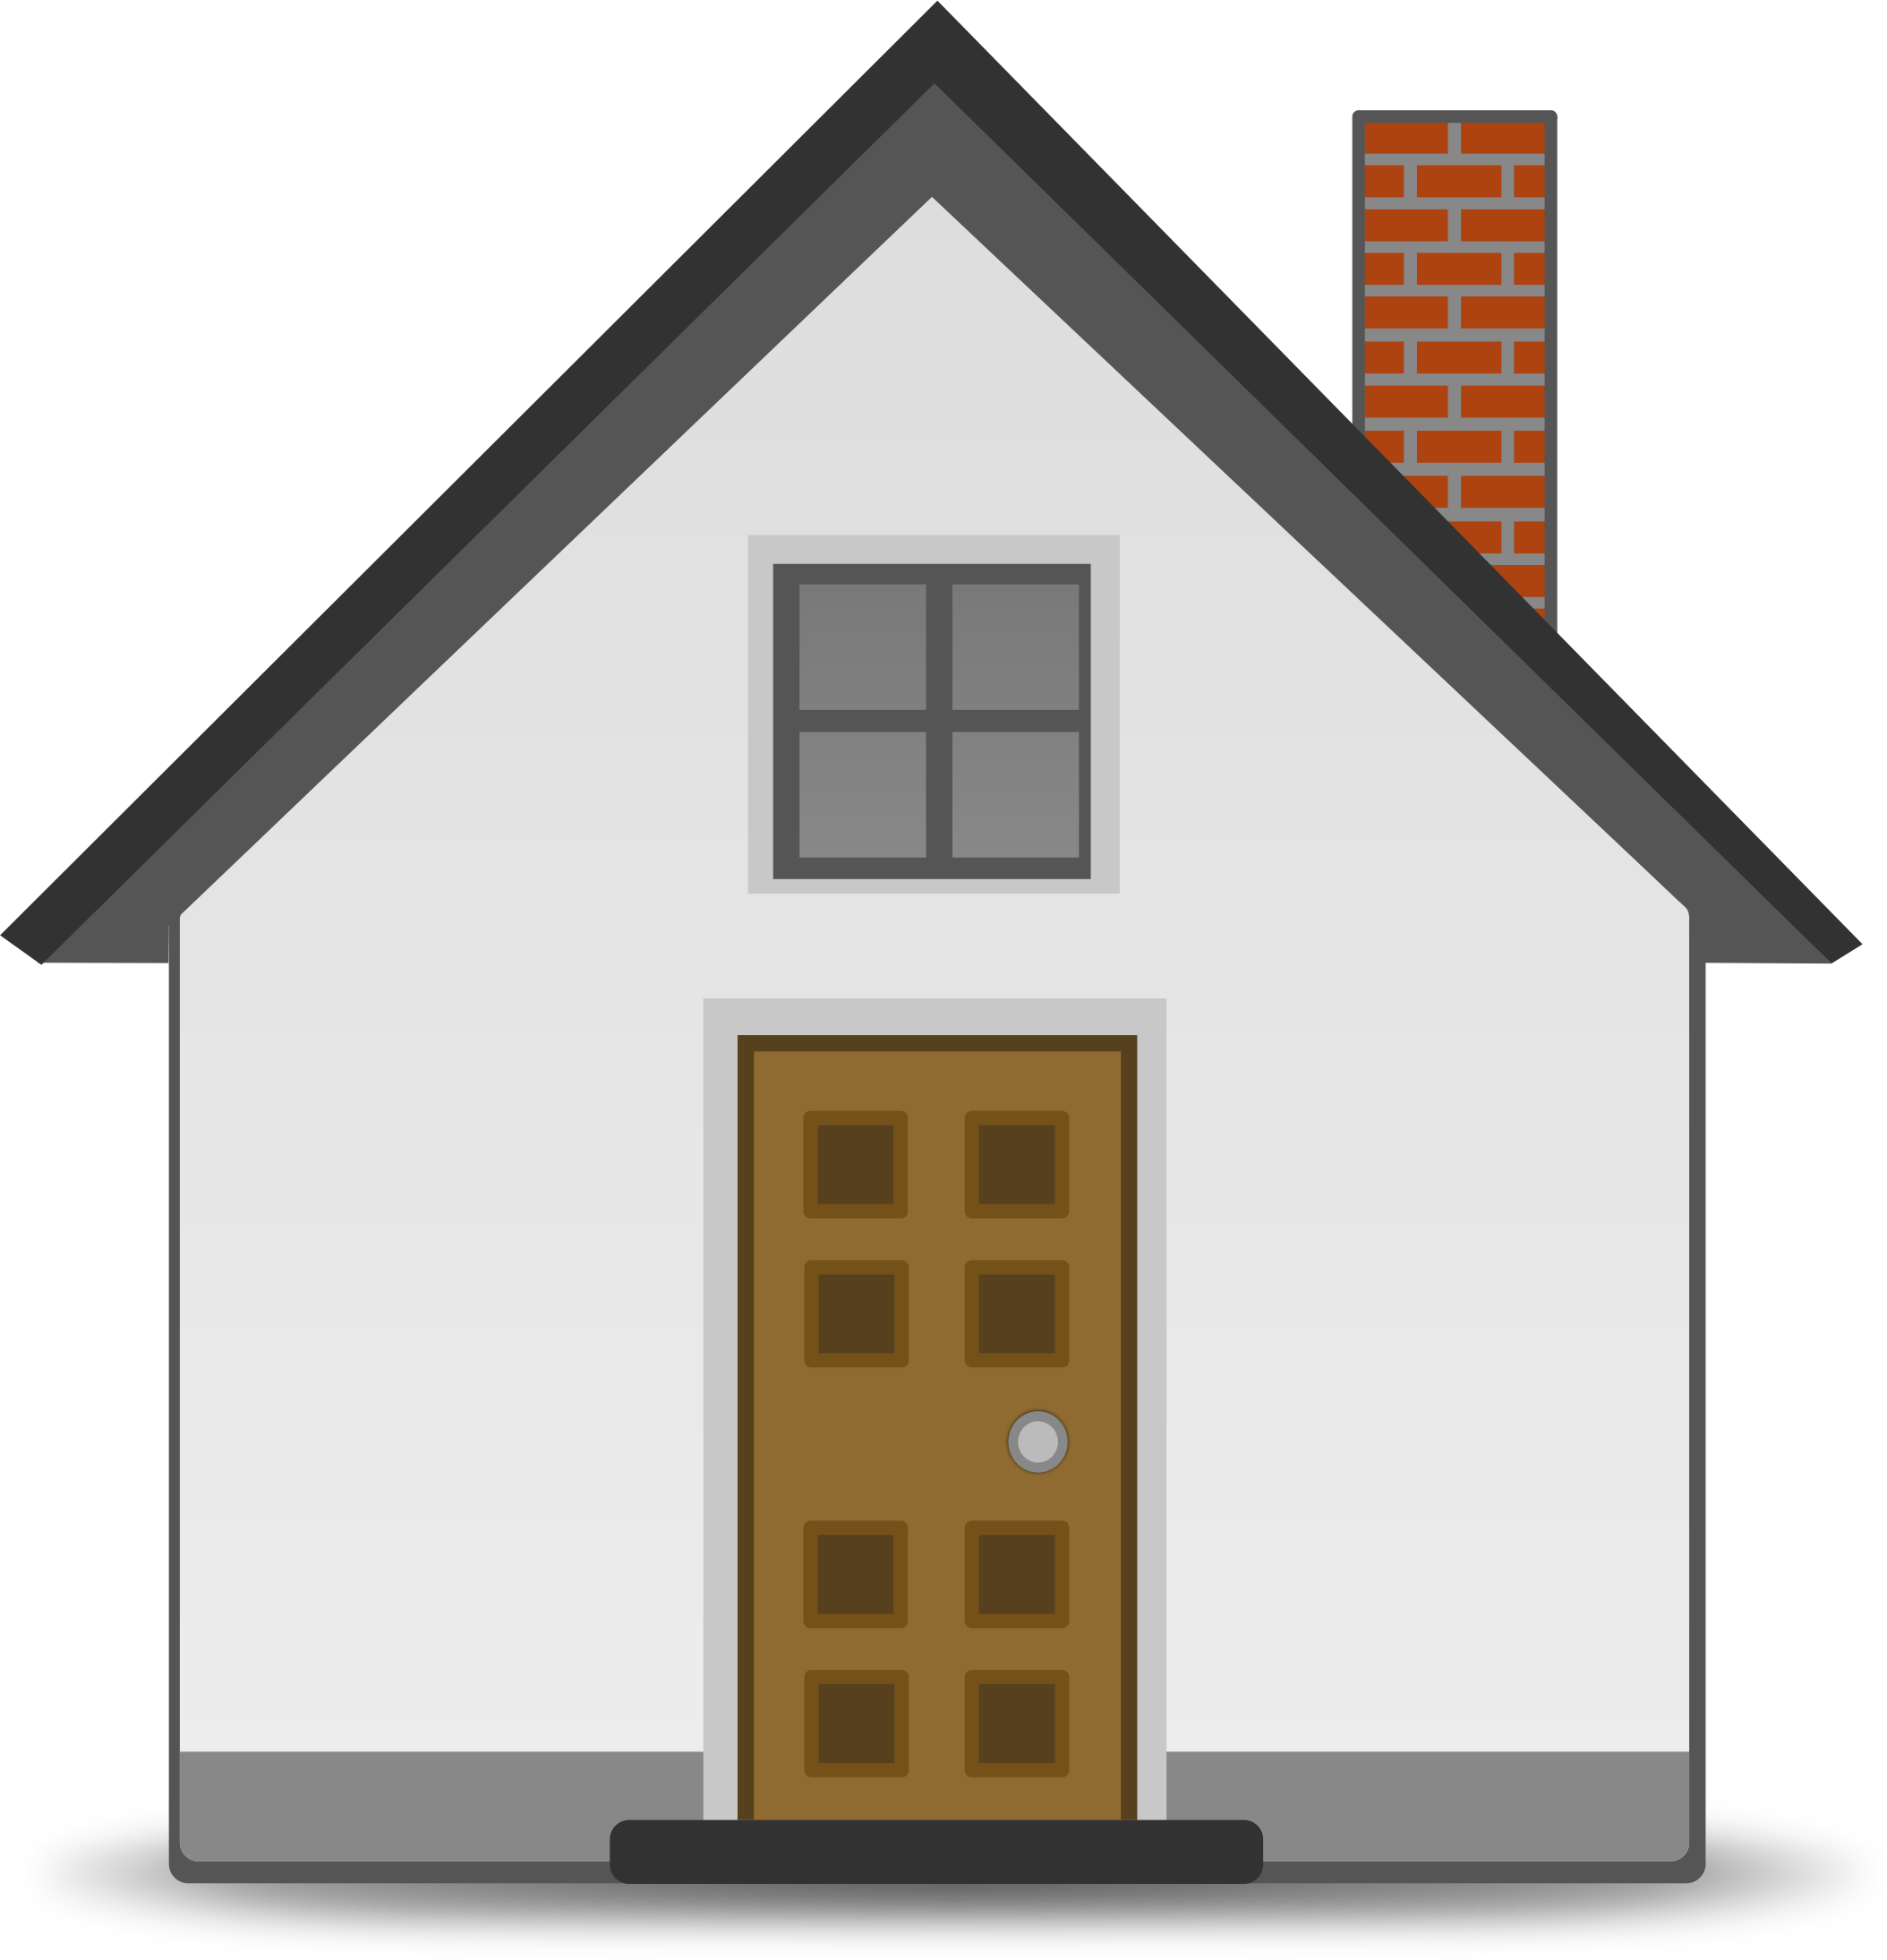 House at night clipart graphic black and white download House clipart png clipart download #45374 - Free Icons and PNG ... graphic black and white download